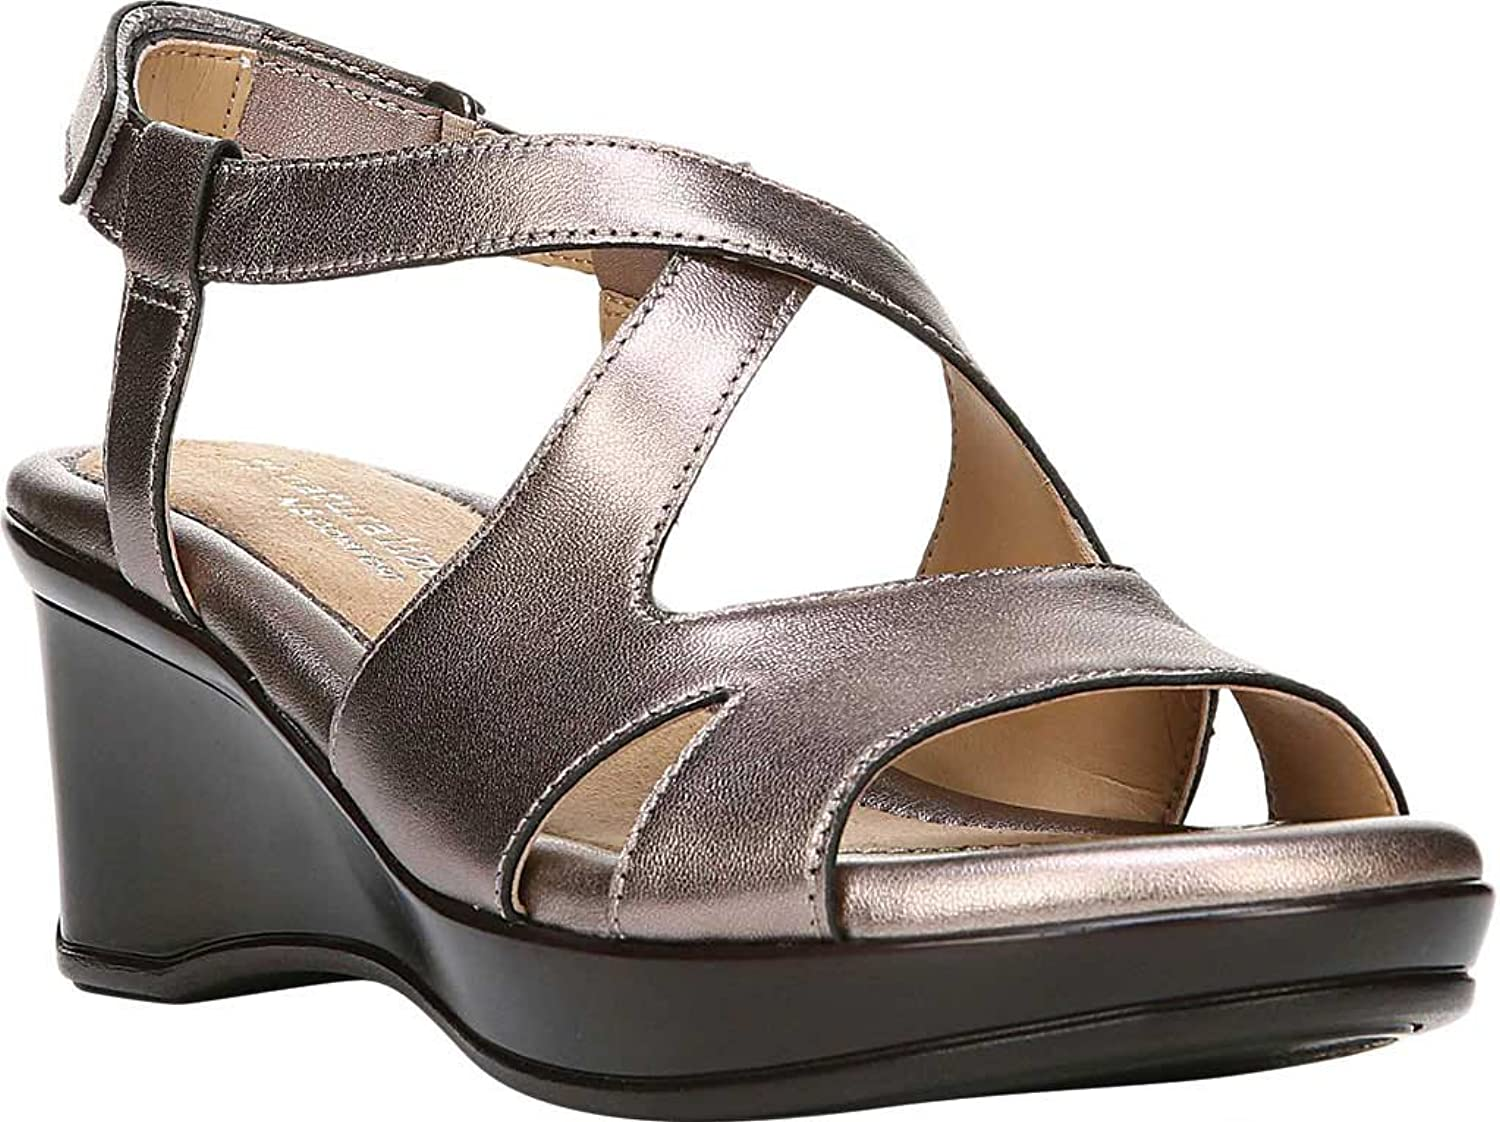 Naturalizer Women's Villette Quarter Strap Sandal,Bronze Leather,US 8 M